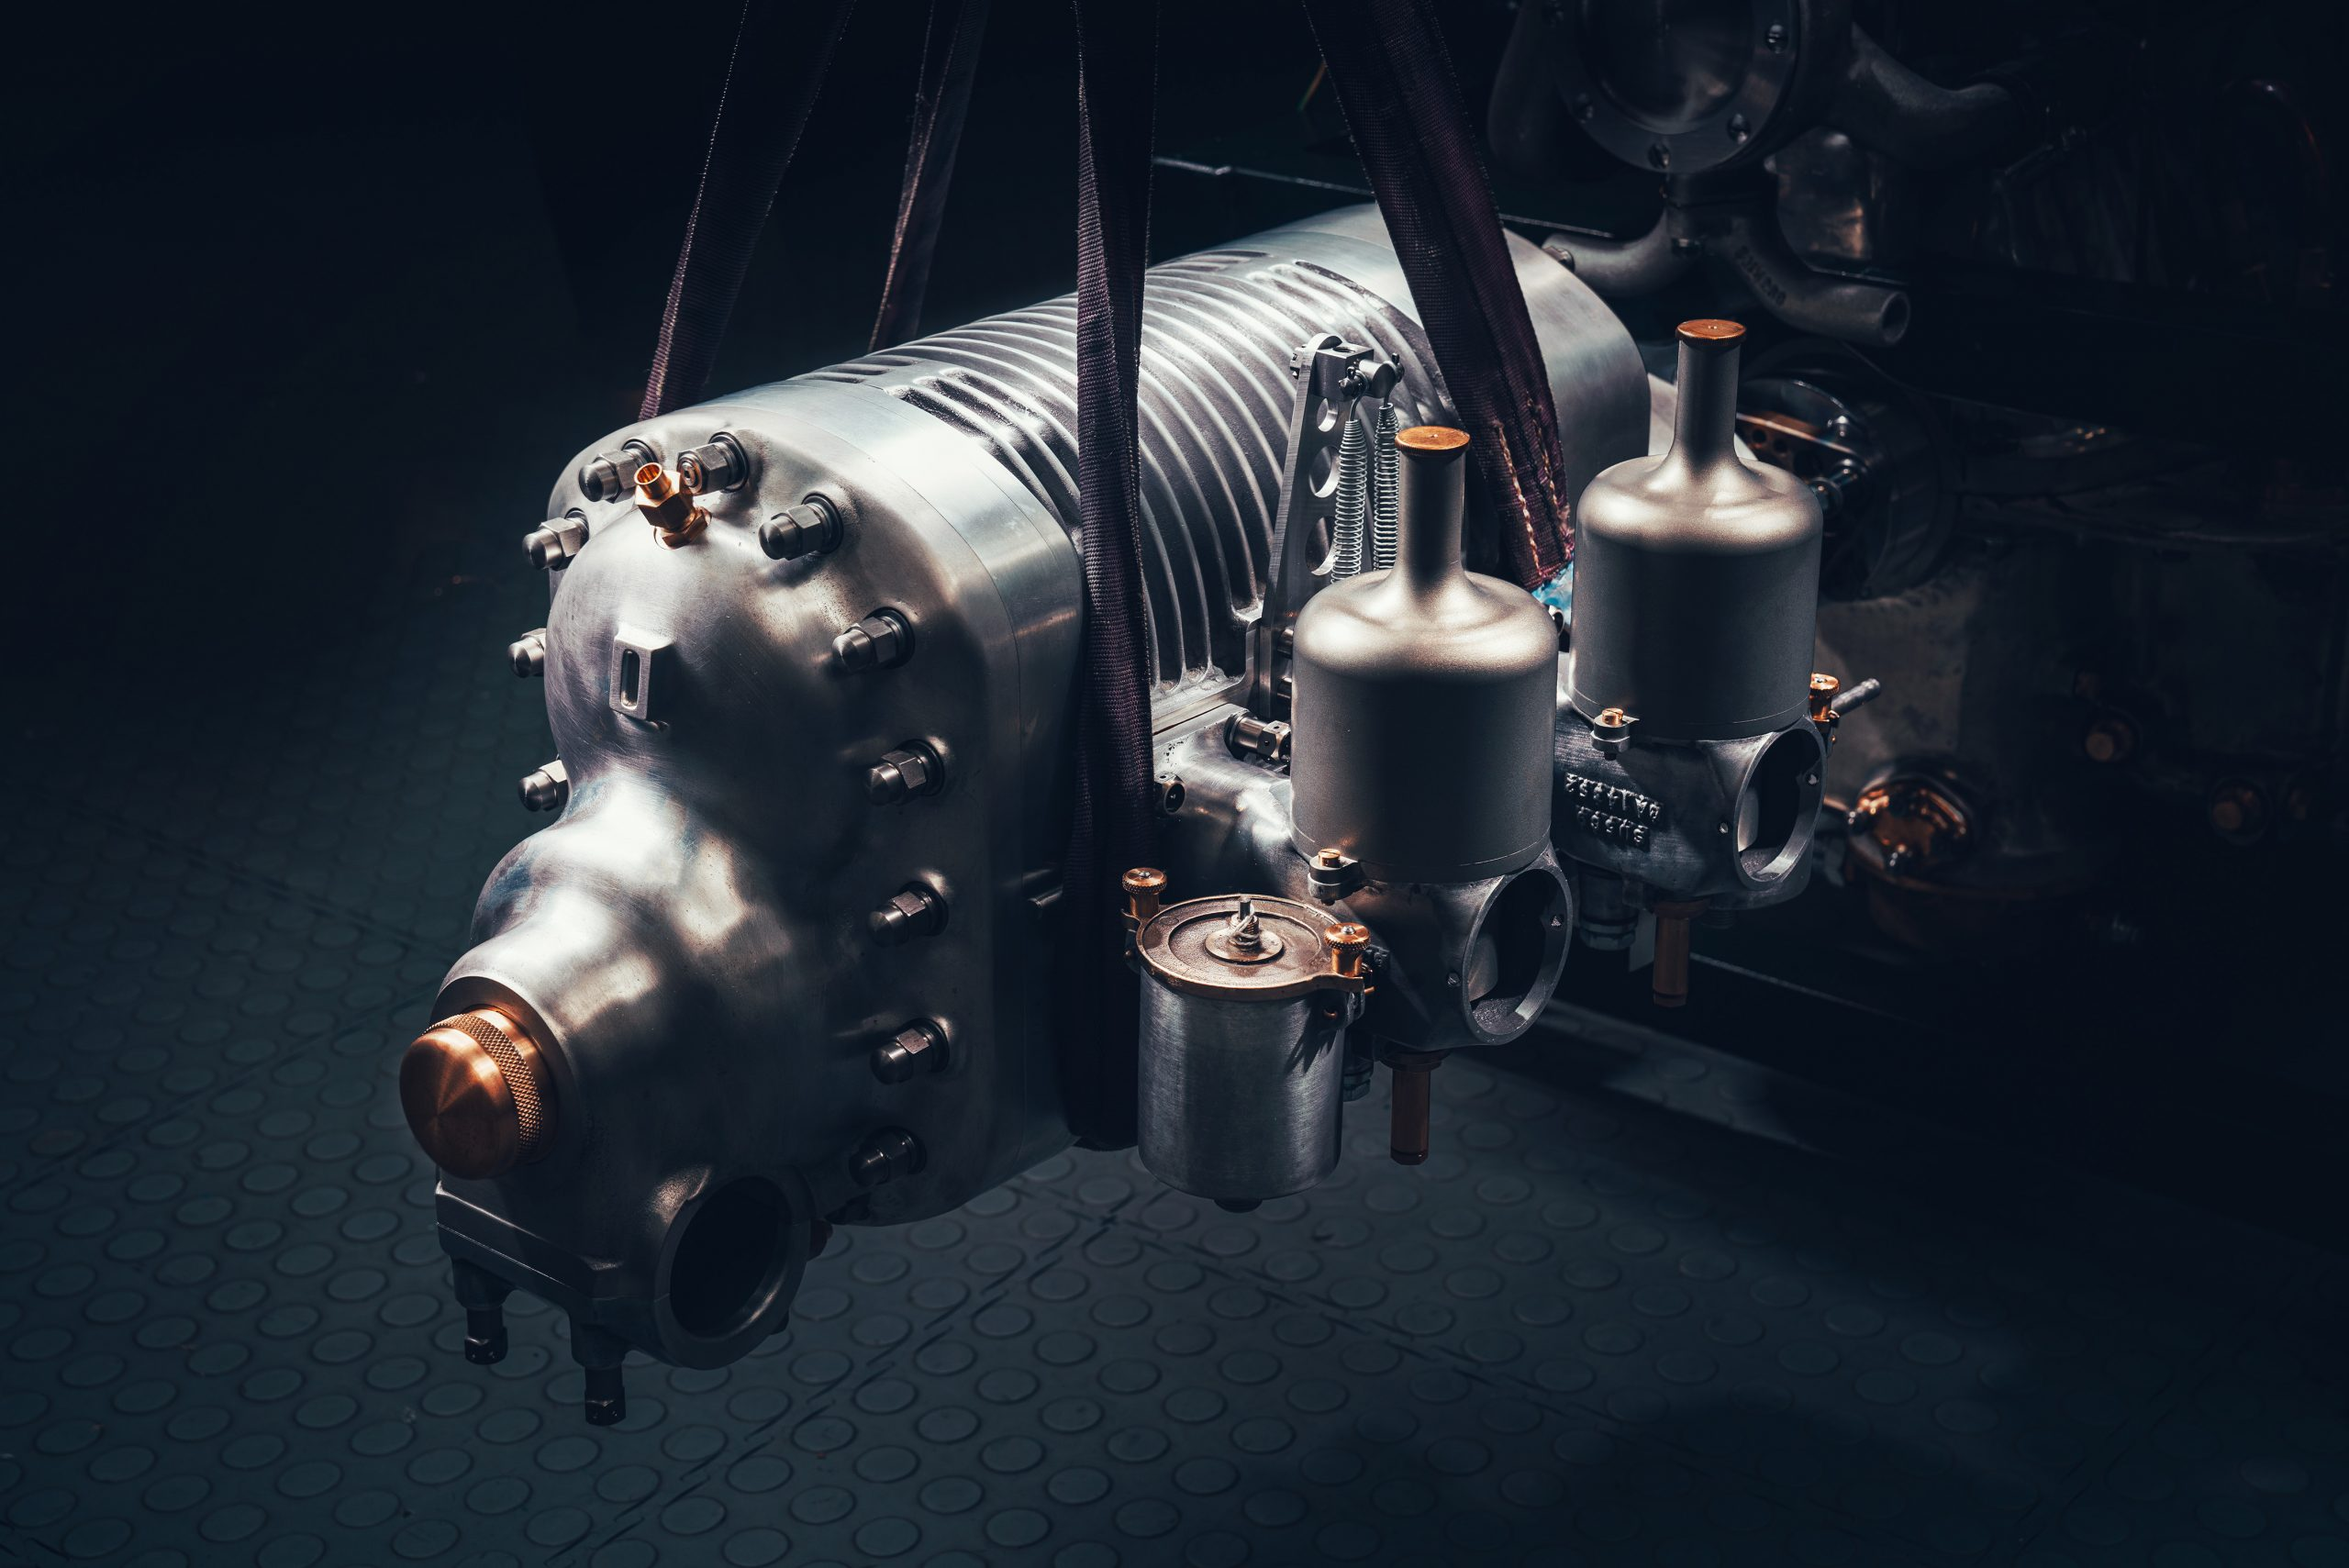 bentley blower continuation engine supercharger close up